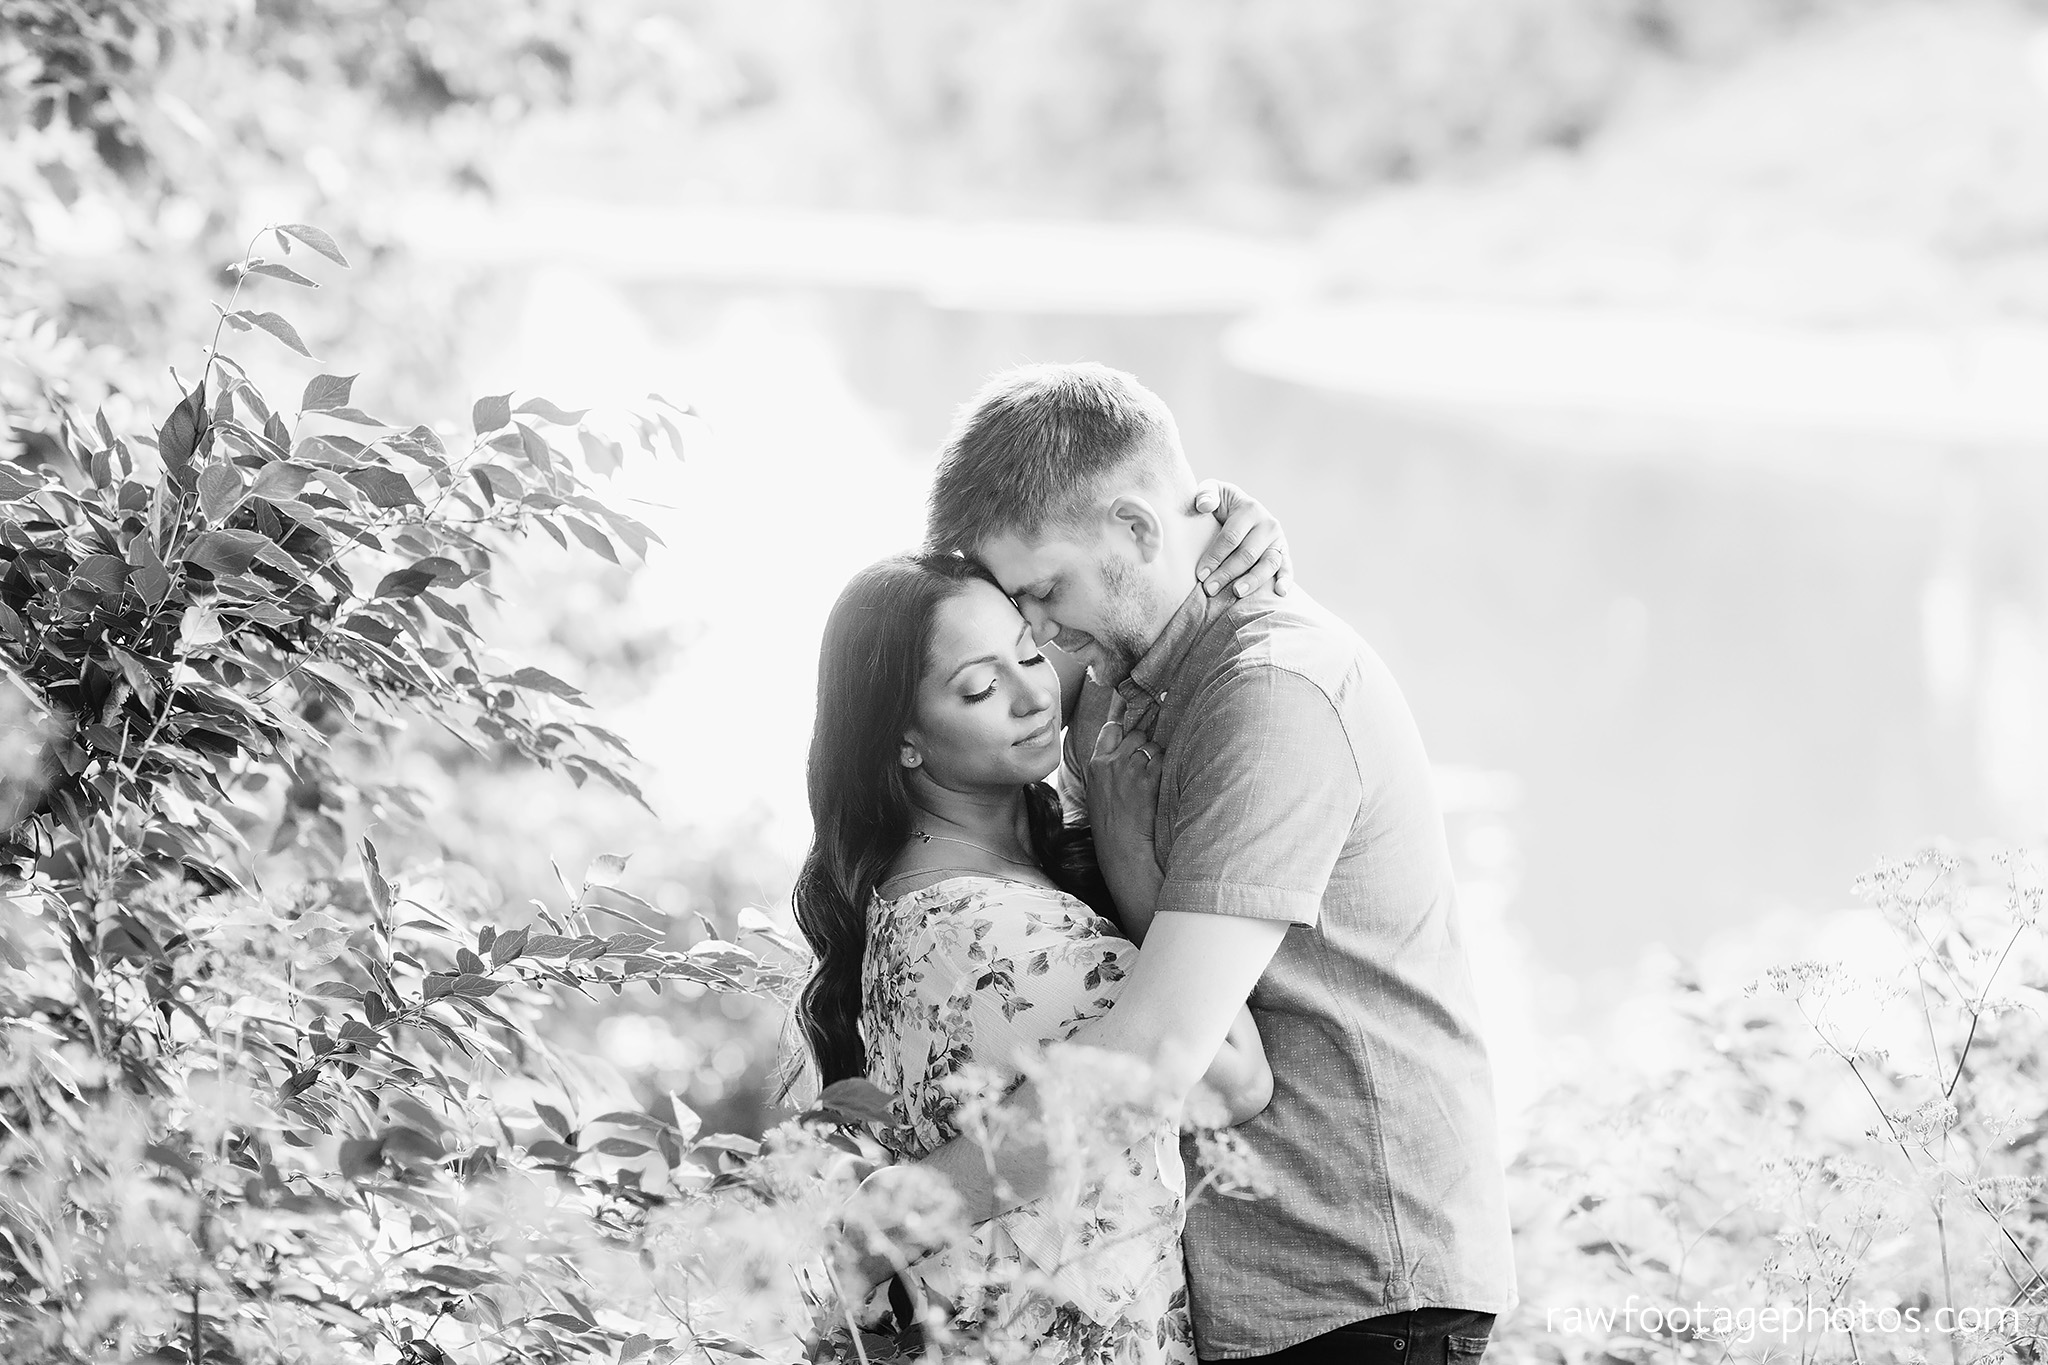 london_ontario_wedding_photographer-engagement_session-best_of_2018-raw_footage_photography020_1.jpg